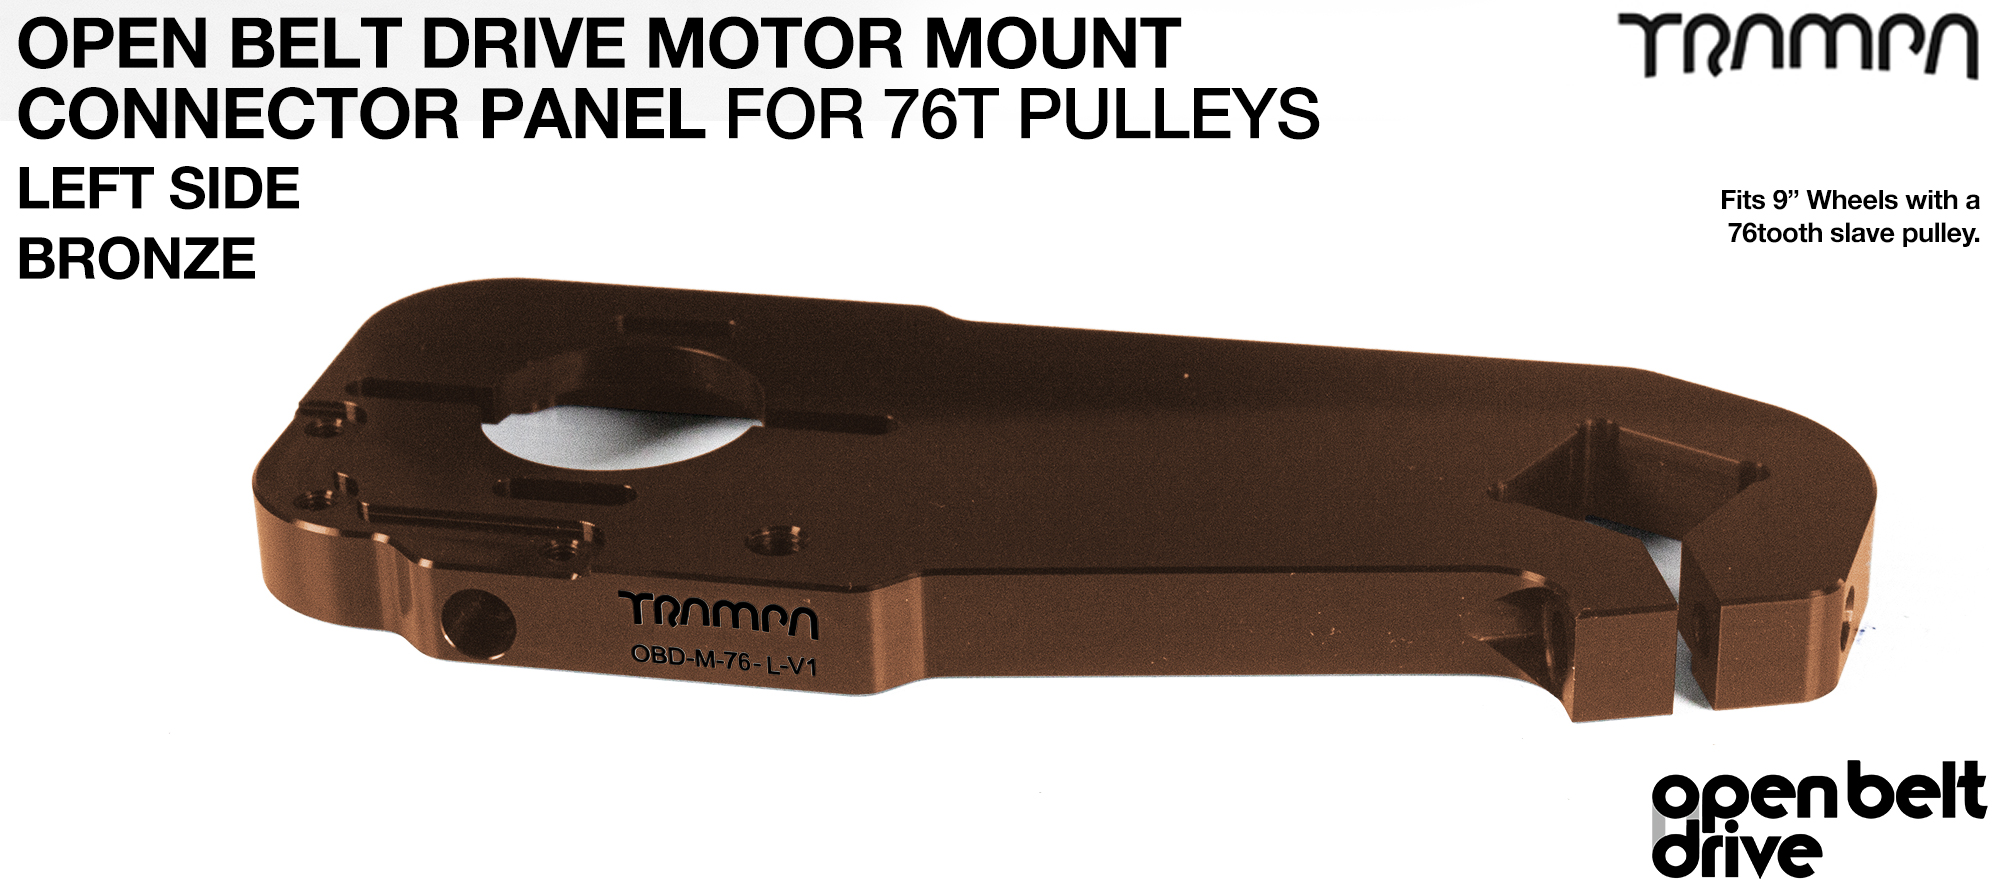 BRONZE 76T TWIN OBD Motor Mount Connector Panels